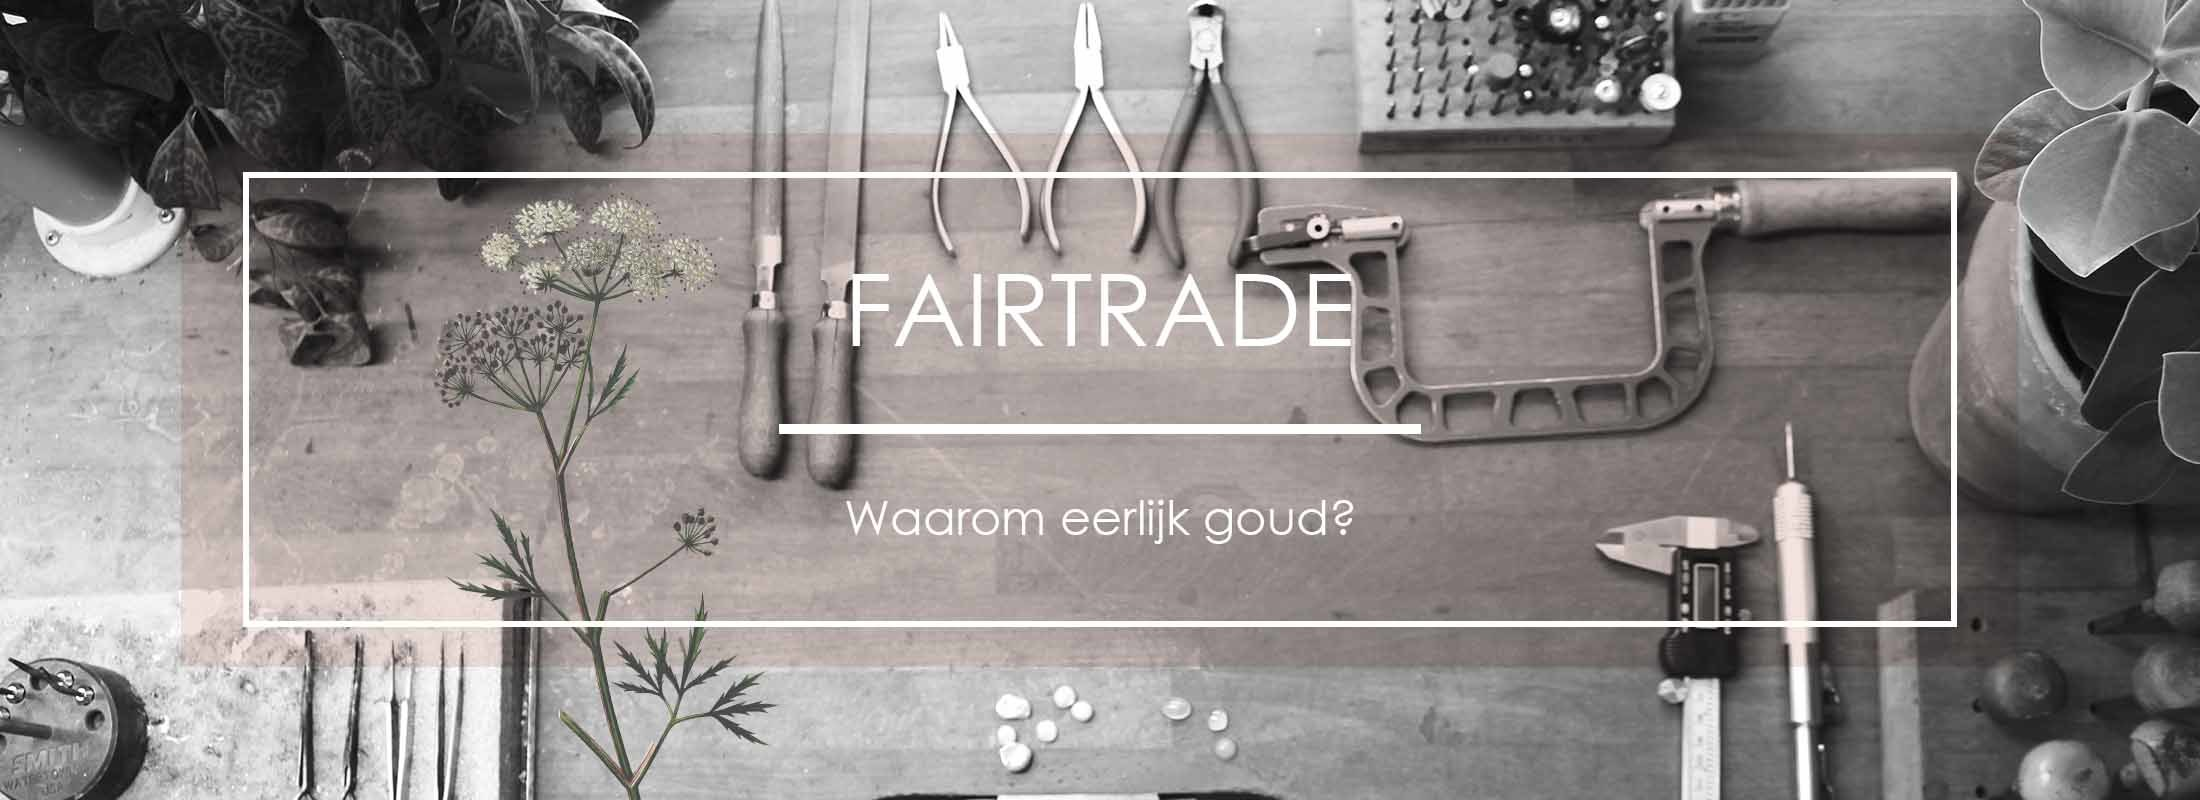 fairtrade trouwringen